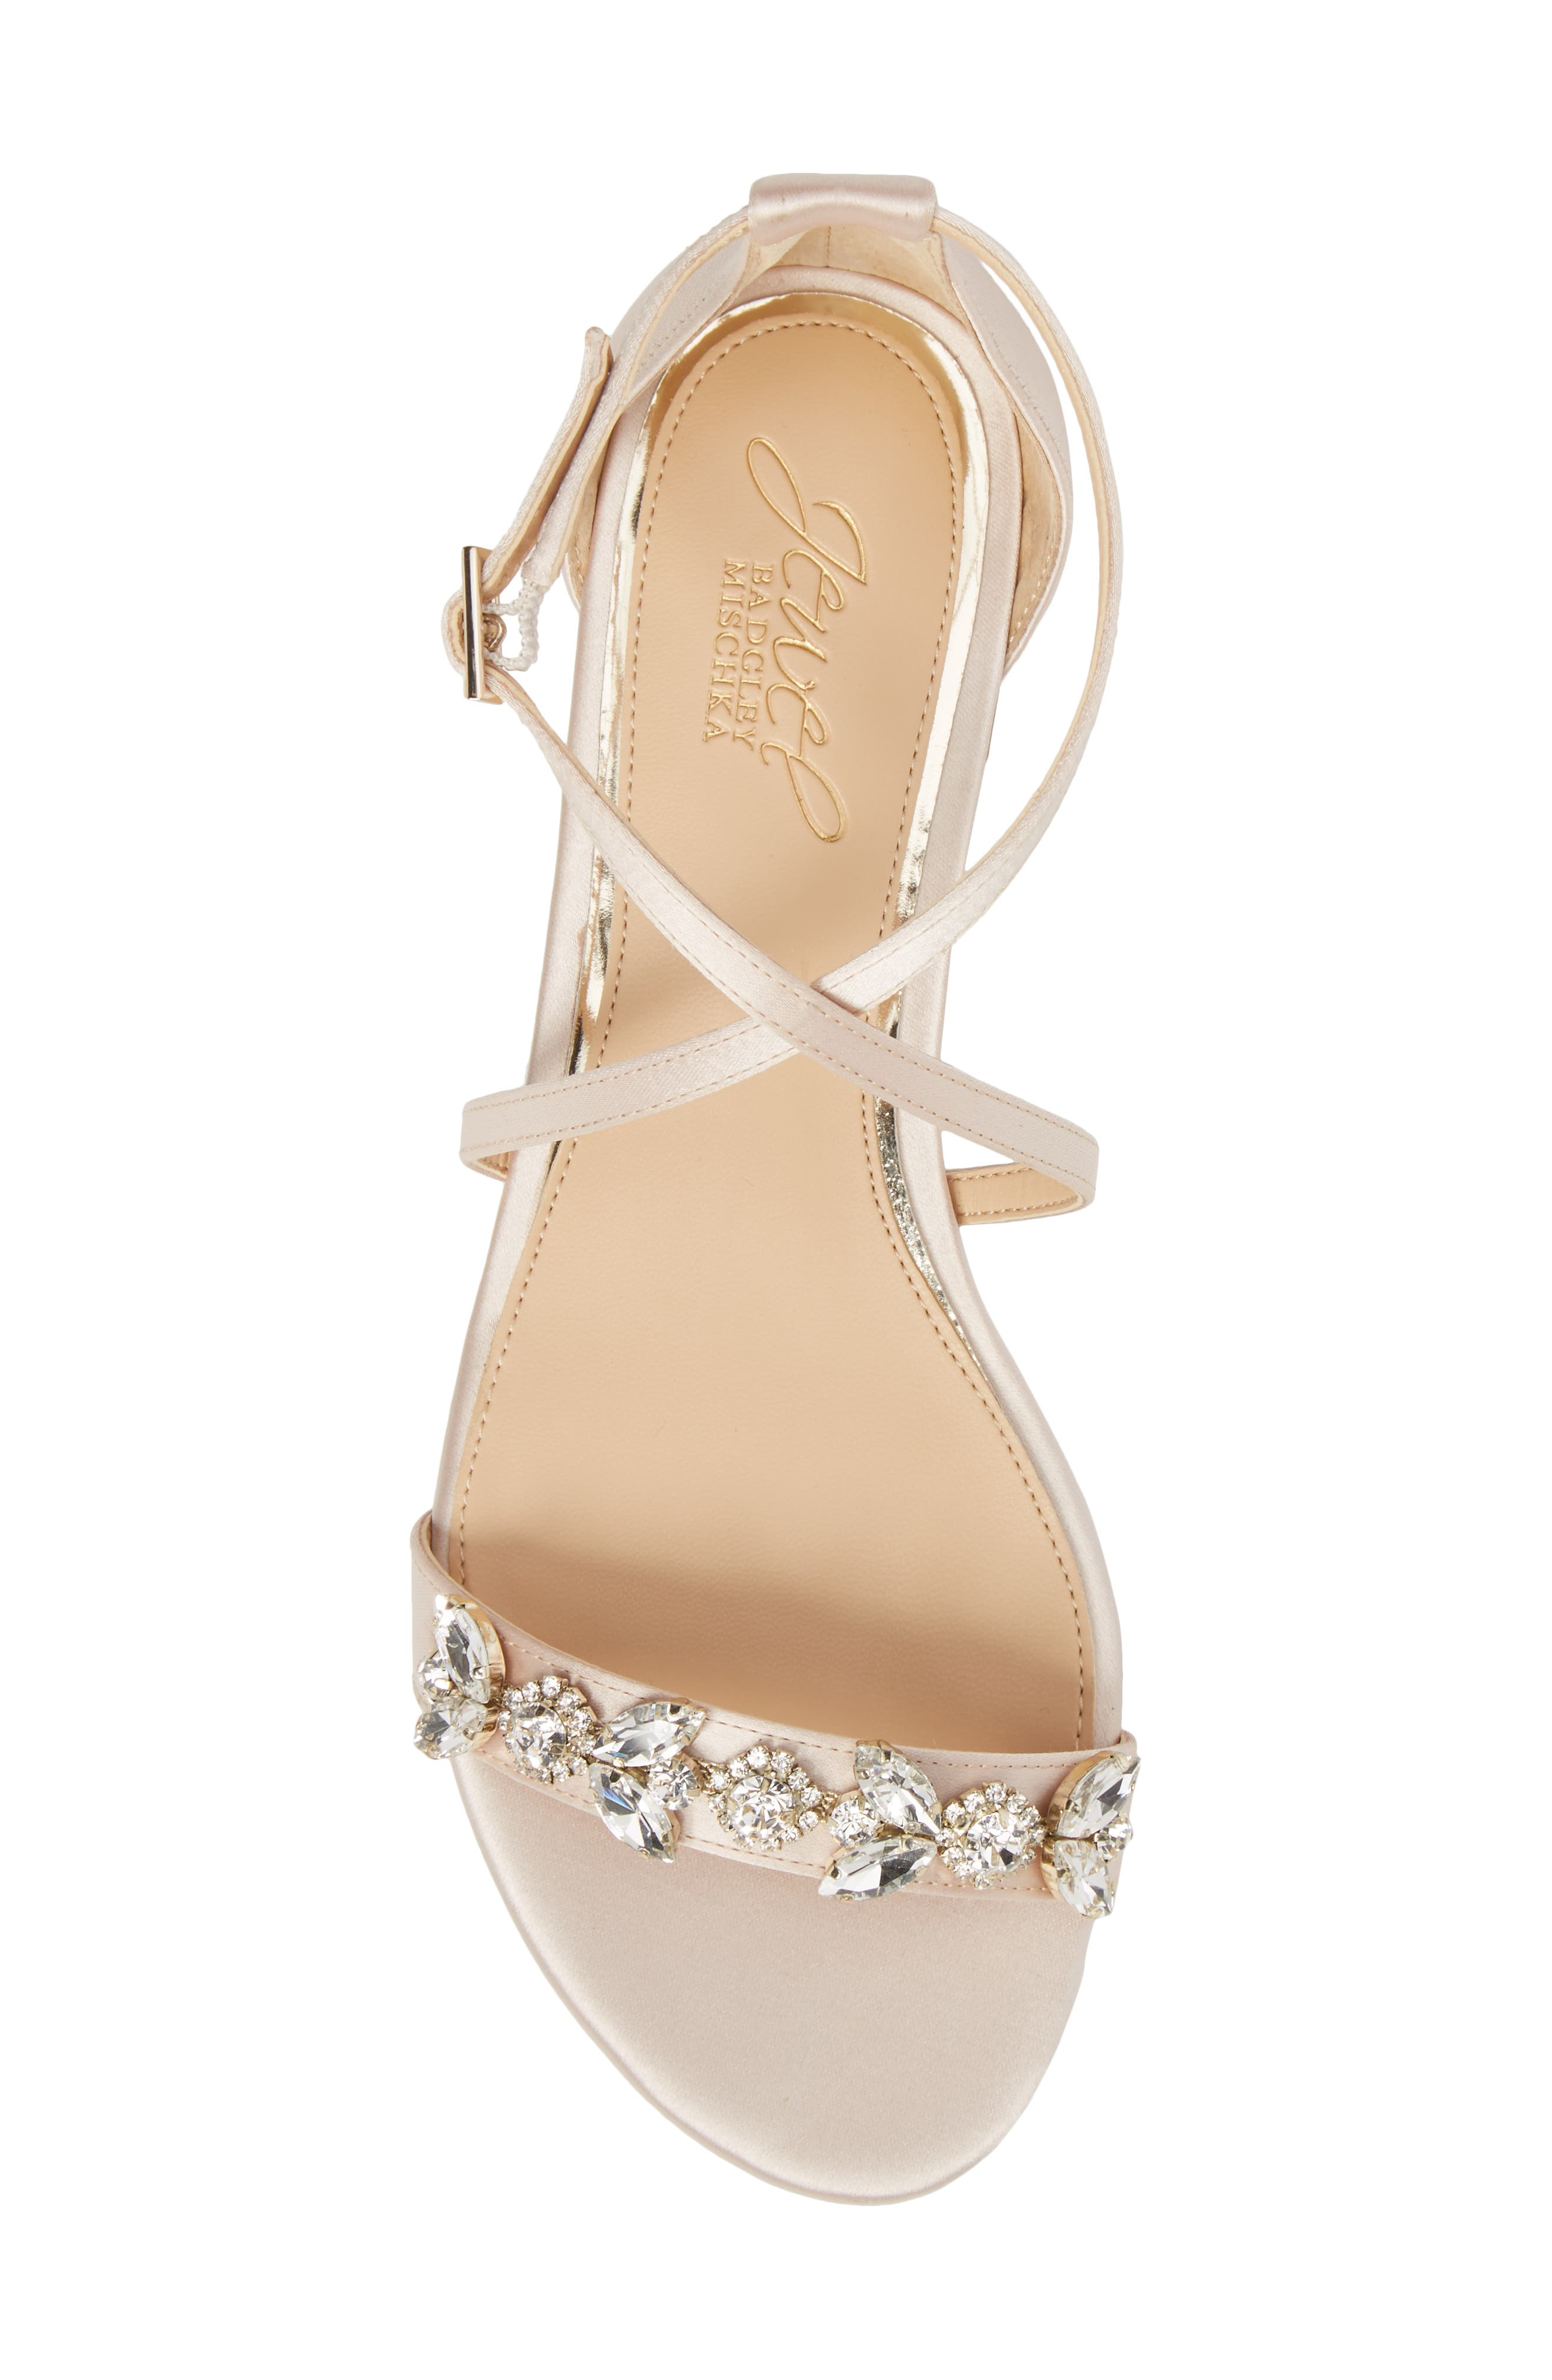 Tessy Embellished Sandal,                             Alternate thumbnail 5, color,                             CHAMPAGNE SATIN